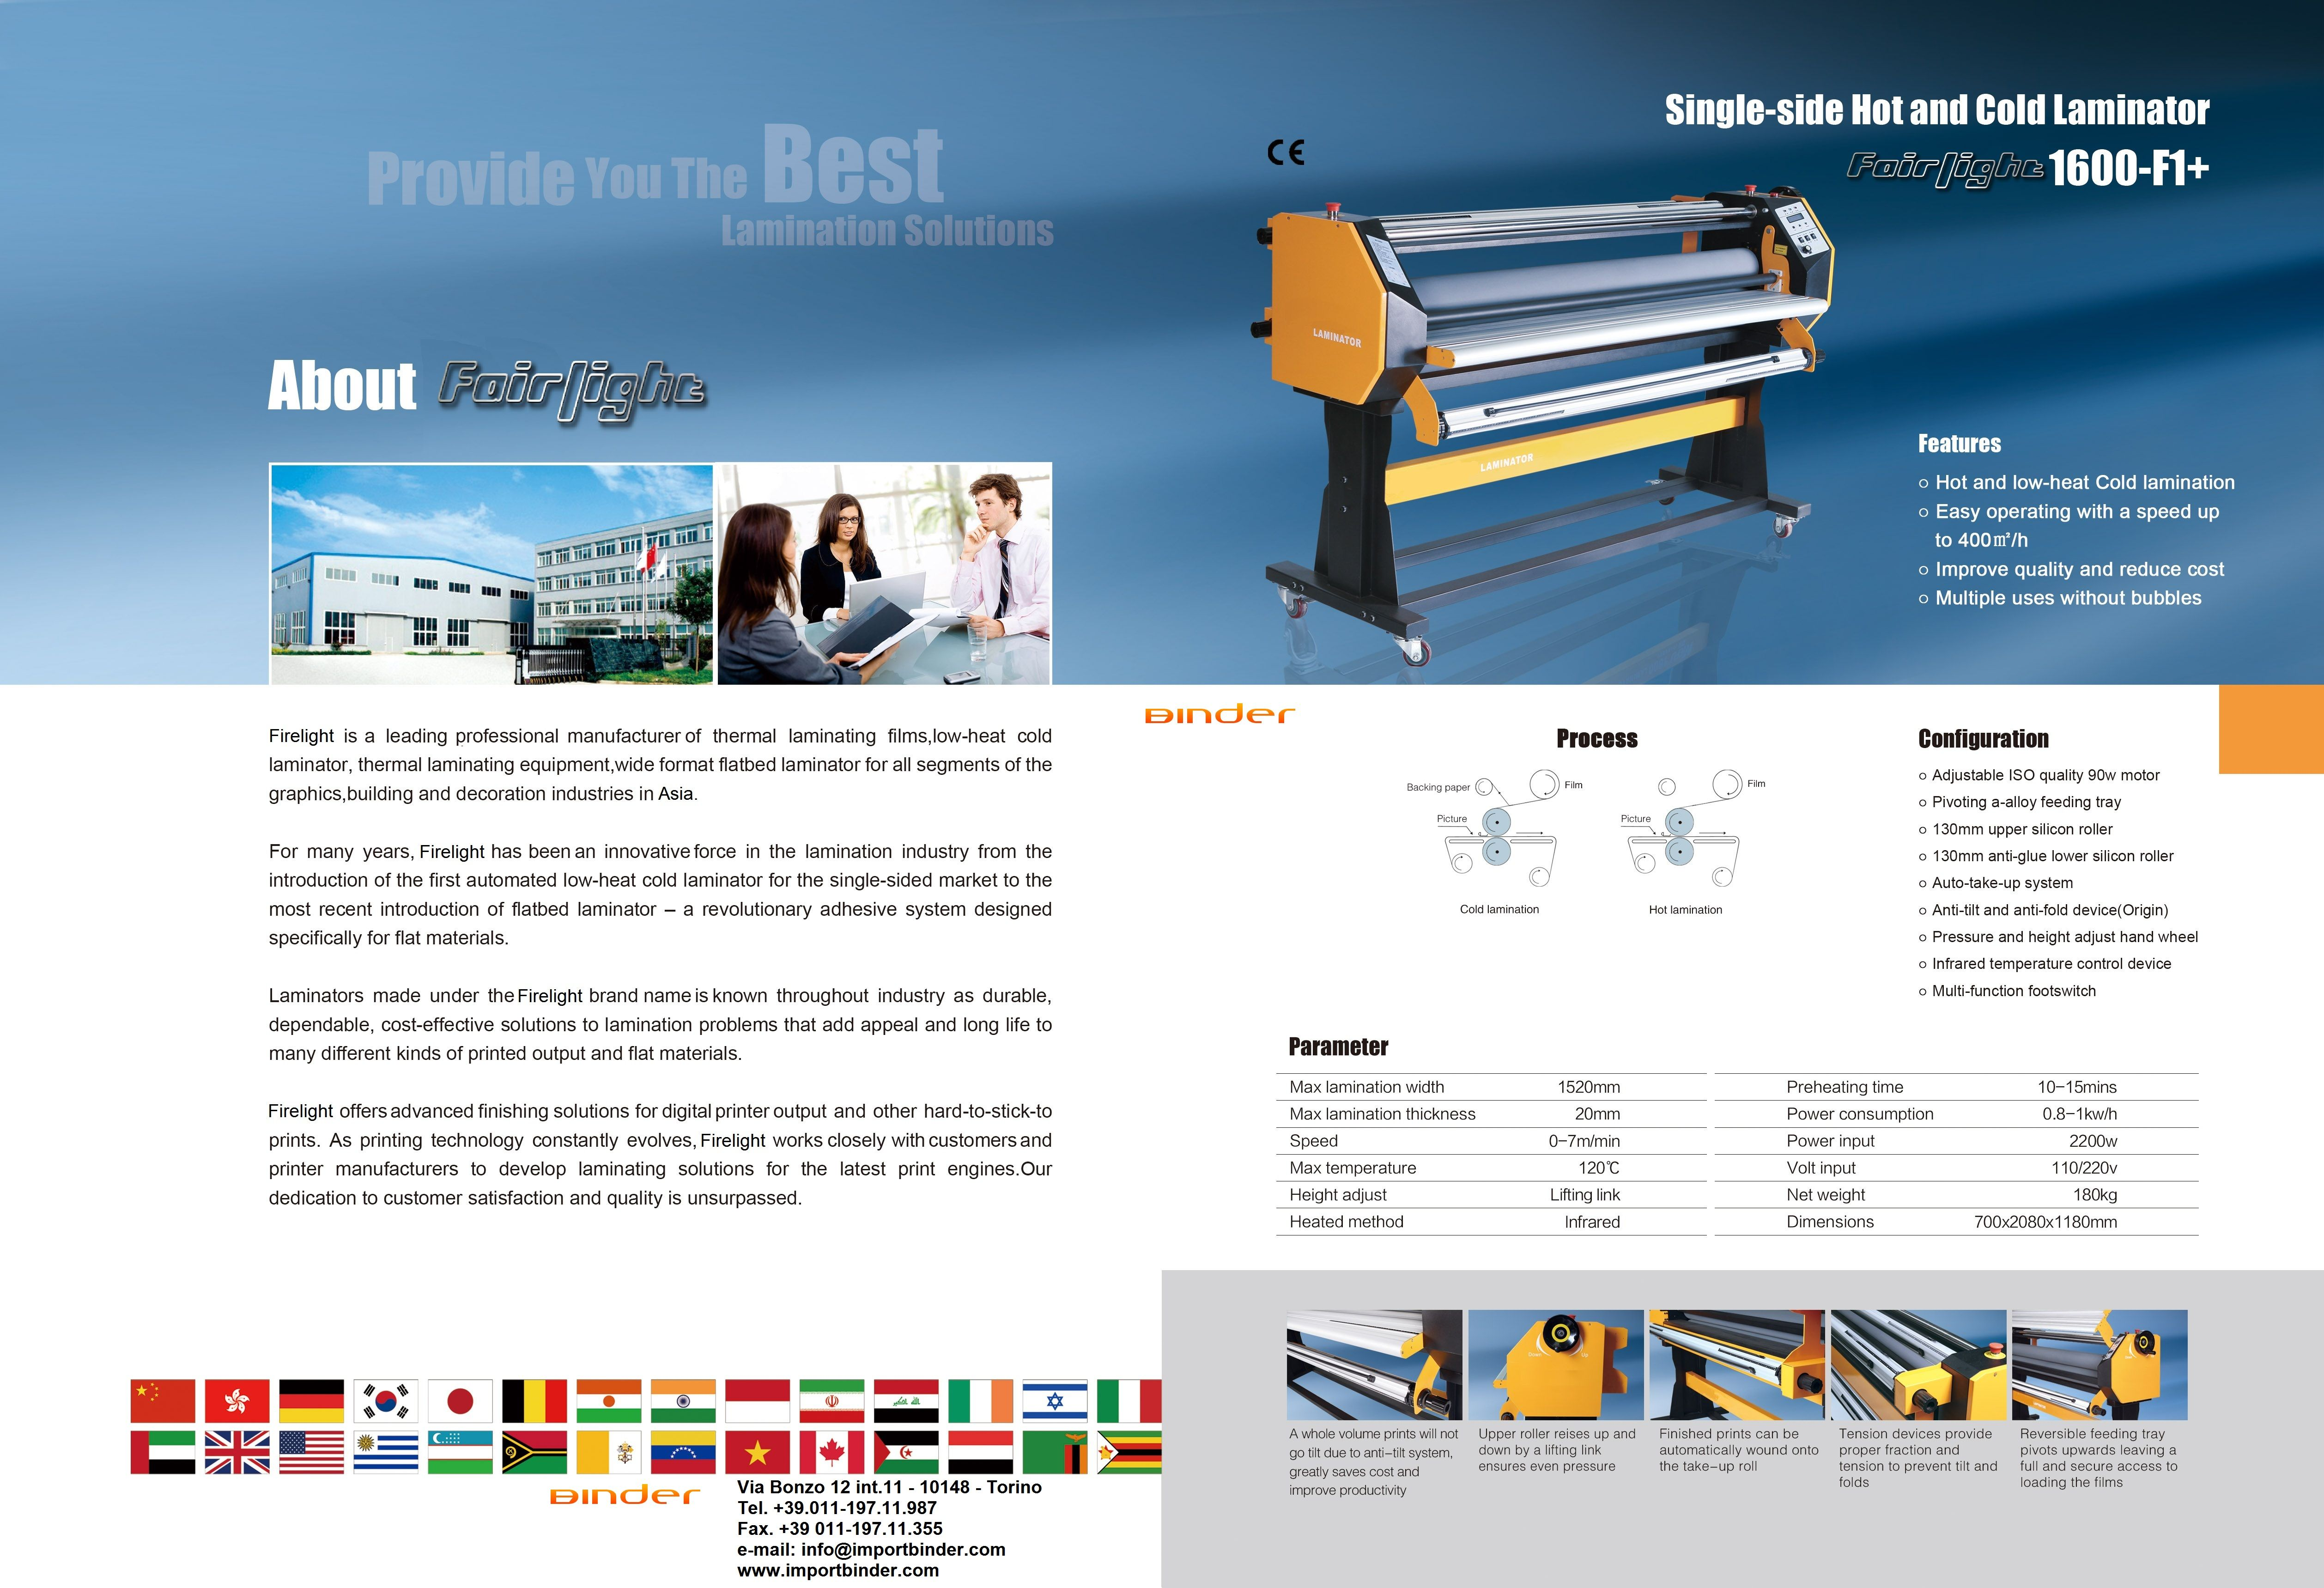 Reduce Cost Improve Quality Good Color Reducibility Absolutely No Air Bubbles And Snow Points High Efficiency And Yields The Legatoria Affido Tipografia